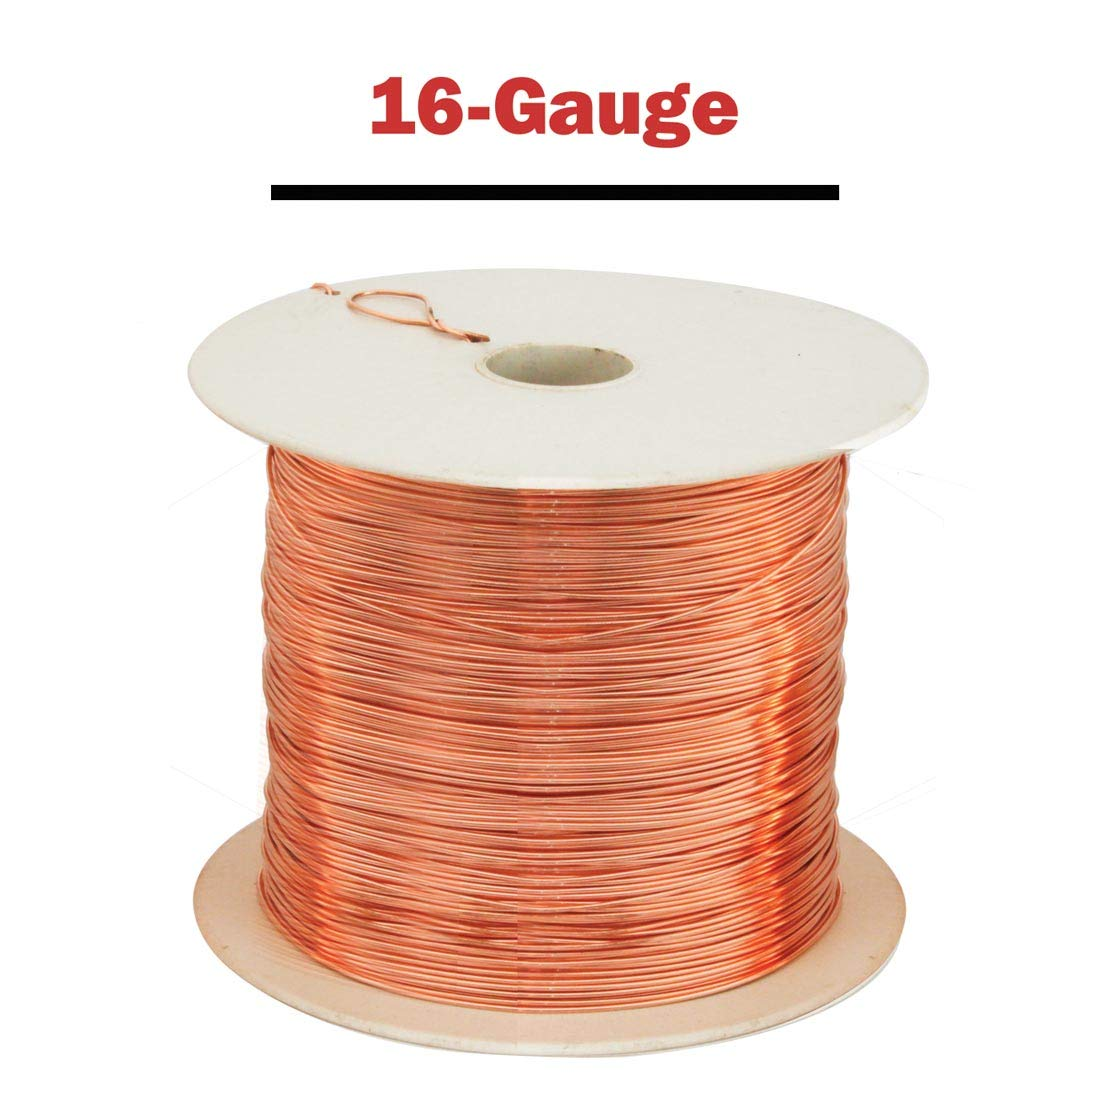 Parawire Copper Wire - 16-Gauge, 635 ft. spool